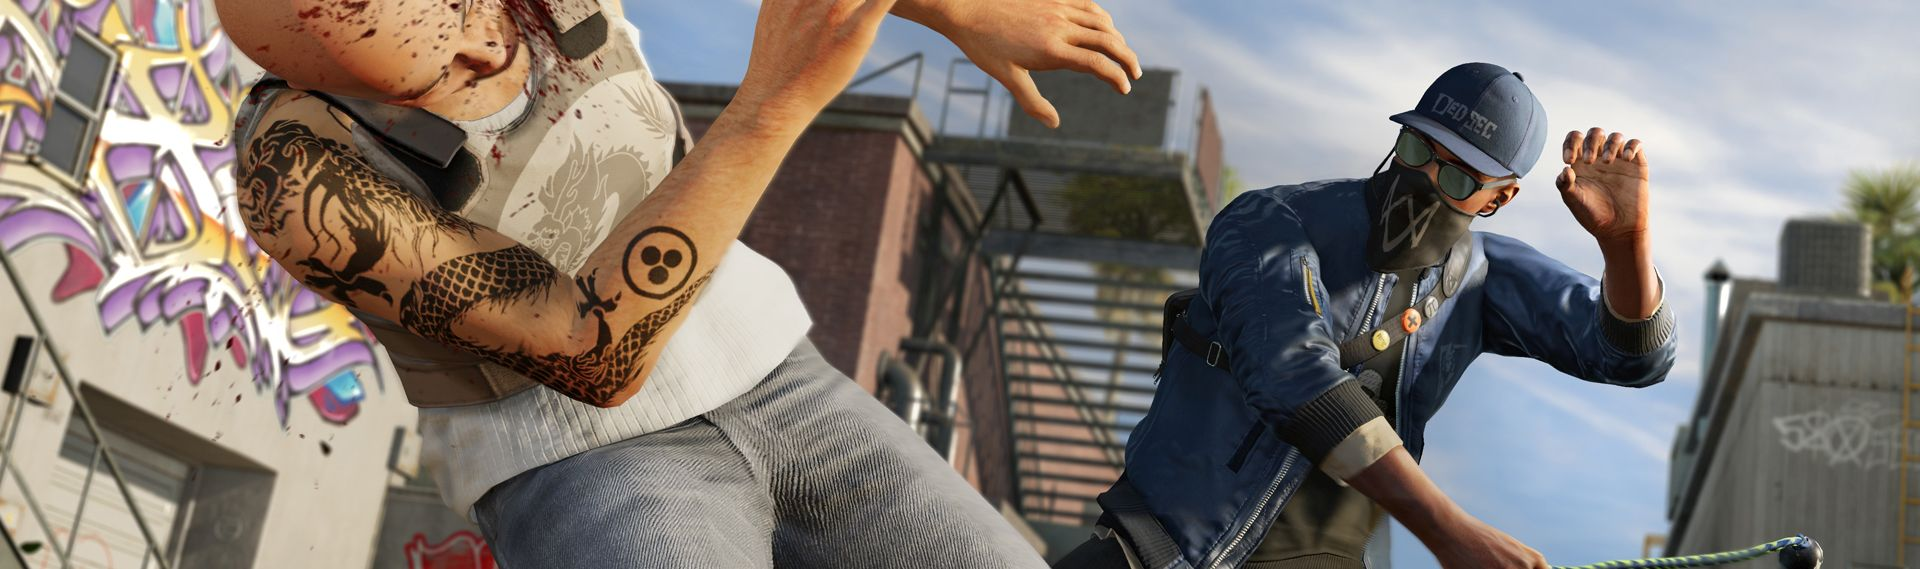 Watch Dogs 2- PC crashes, errors, bugs, 0xc00007b issue